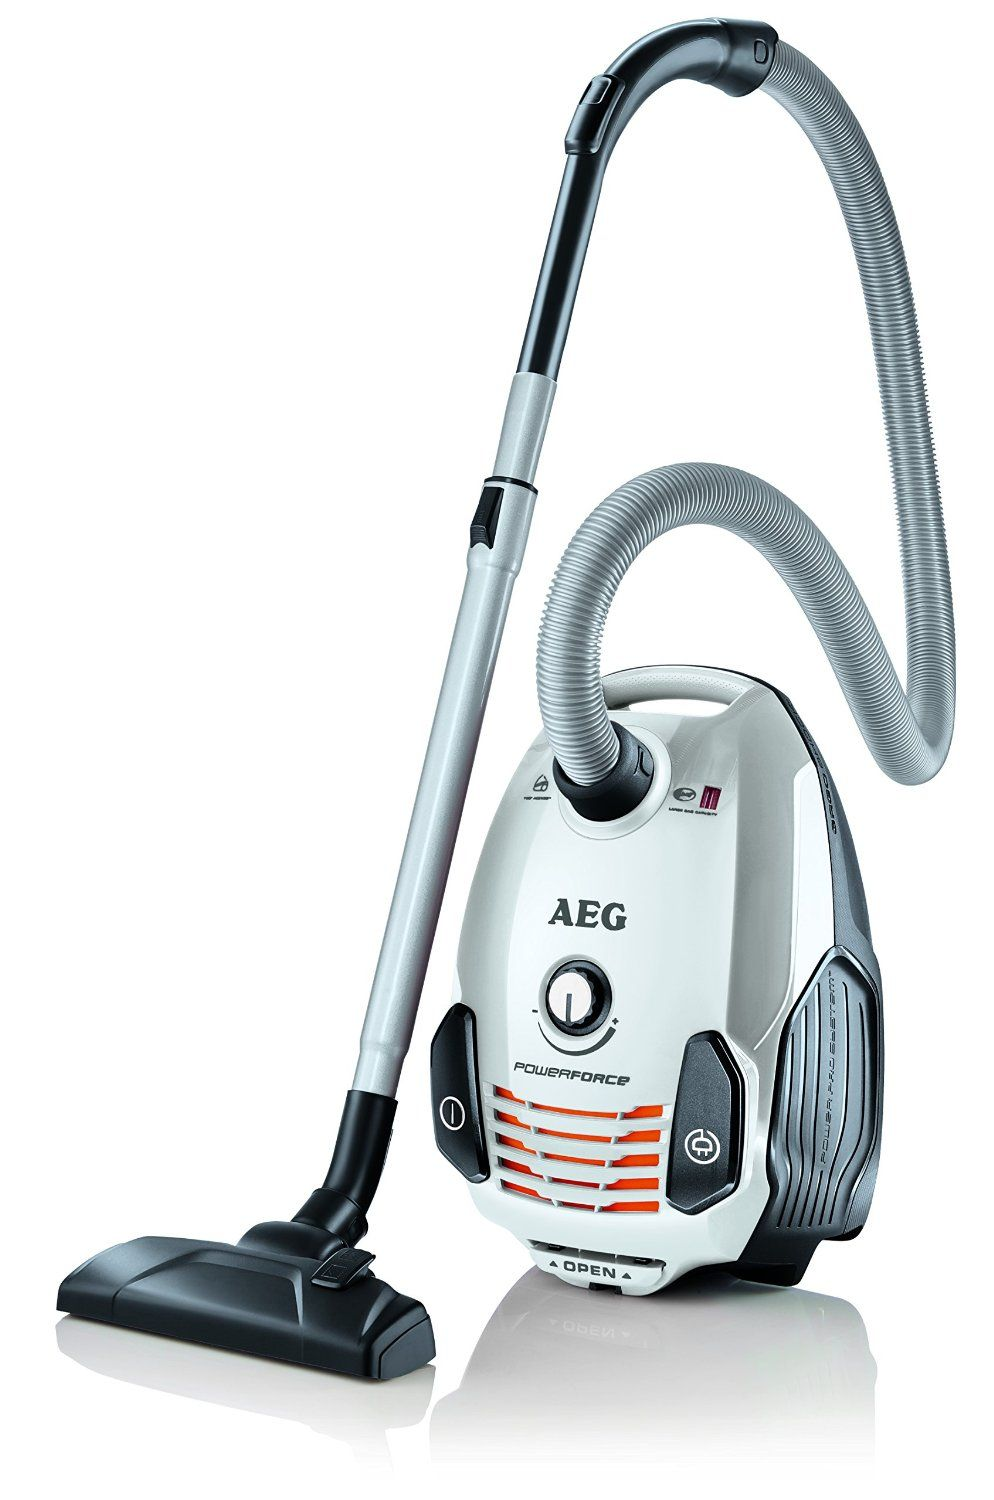 aeg powerforce apf6160 staubsauger